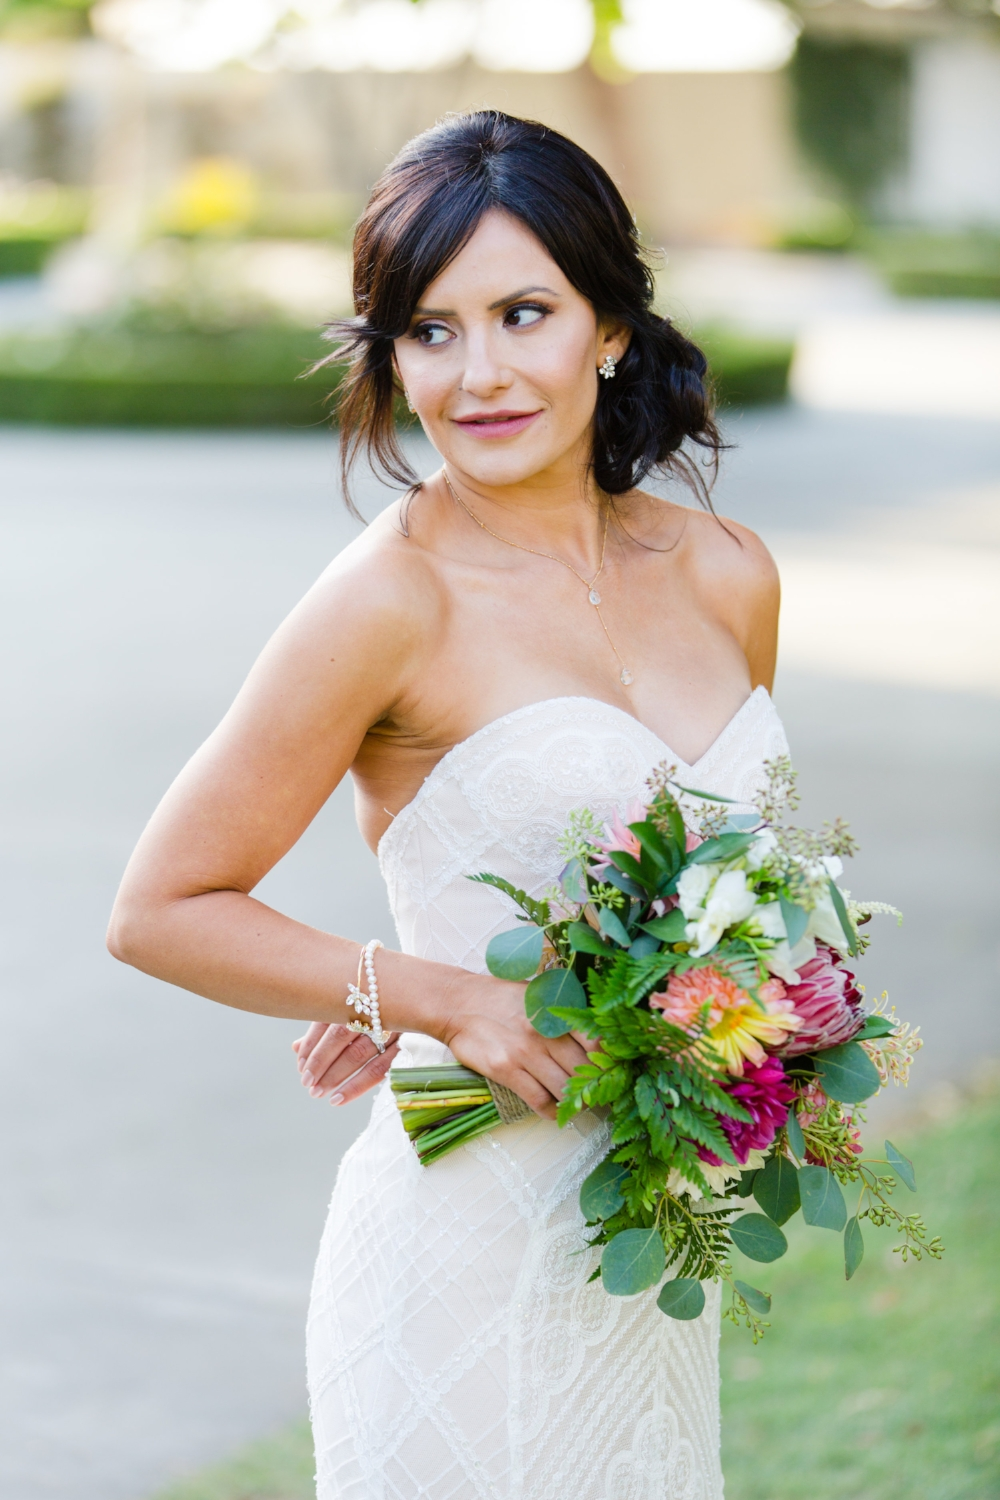 Brunette Bride with Updo holding bouquet outside in Wedding Photography. Bridal Hair and Makeup by Vanity Belle in Orange County (Costa Mesa) and San Diego (La Jolla)